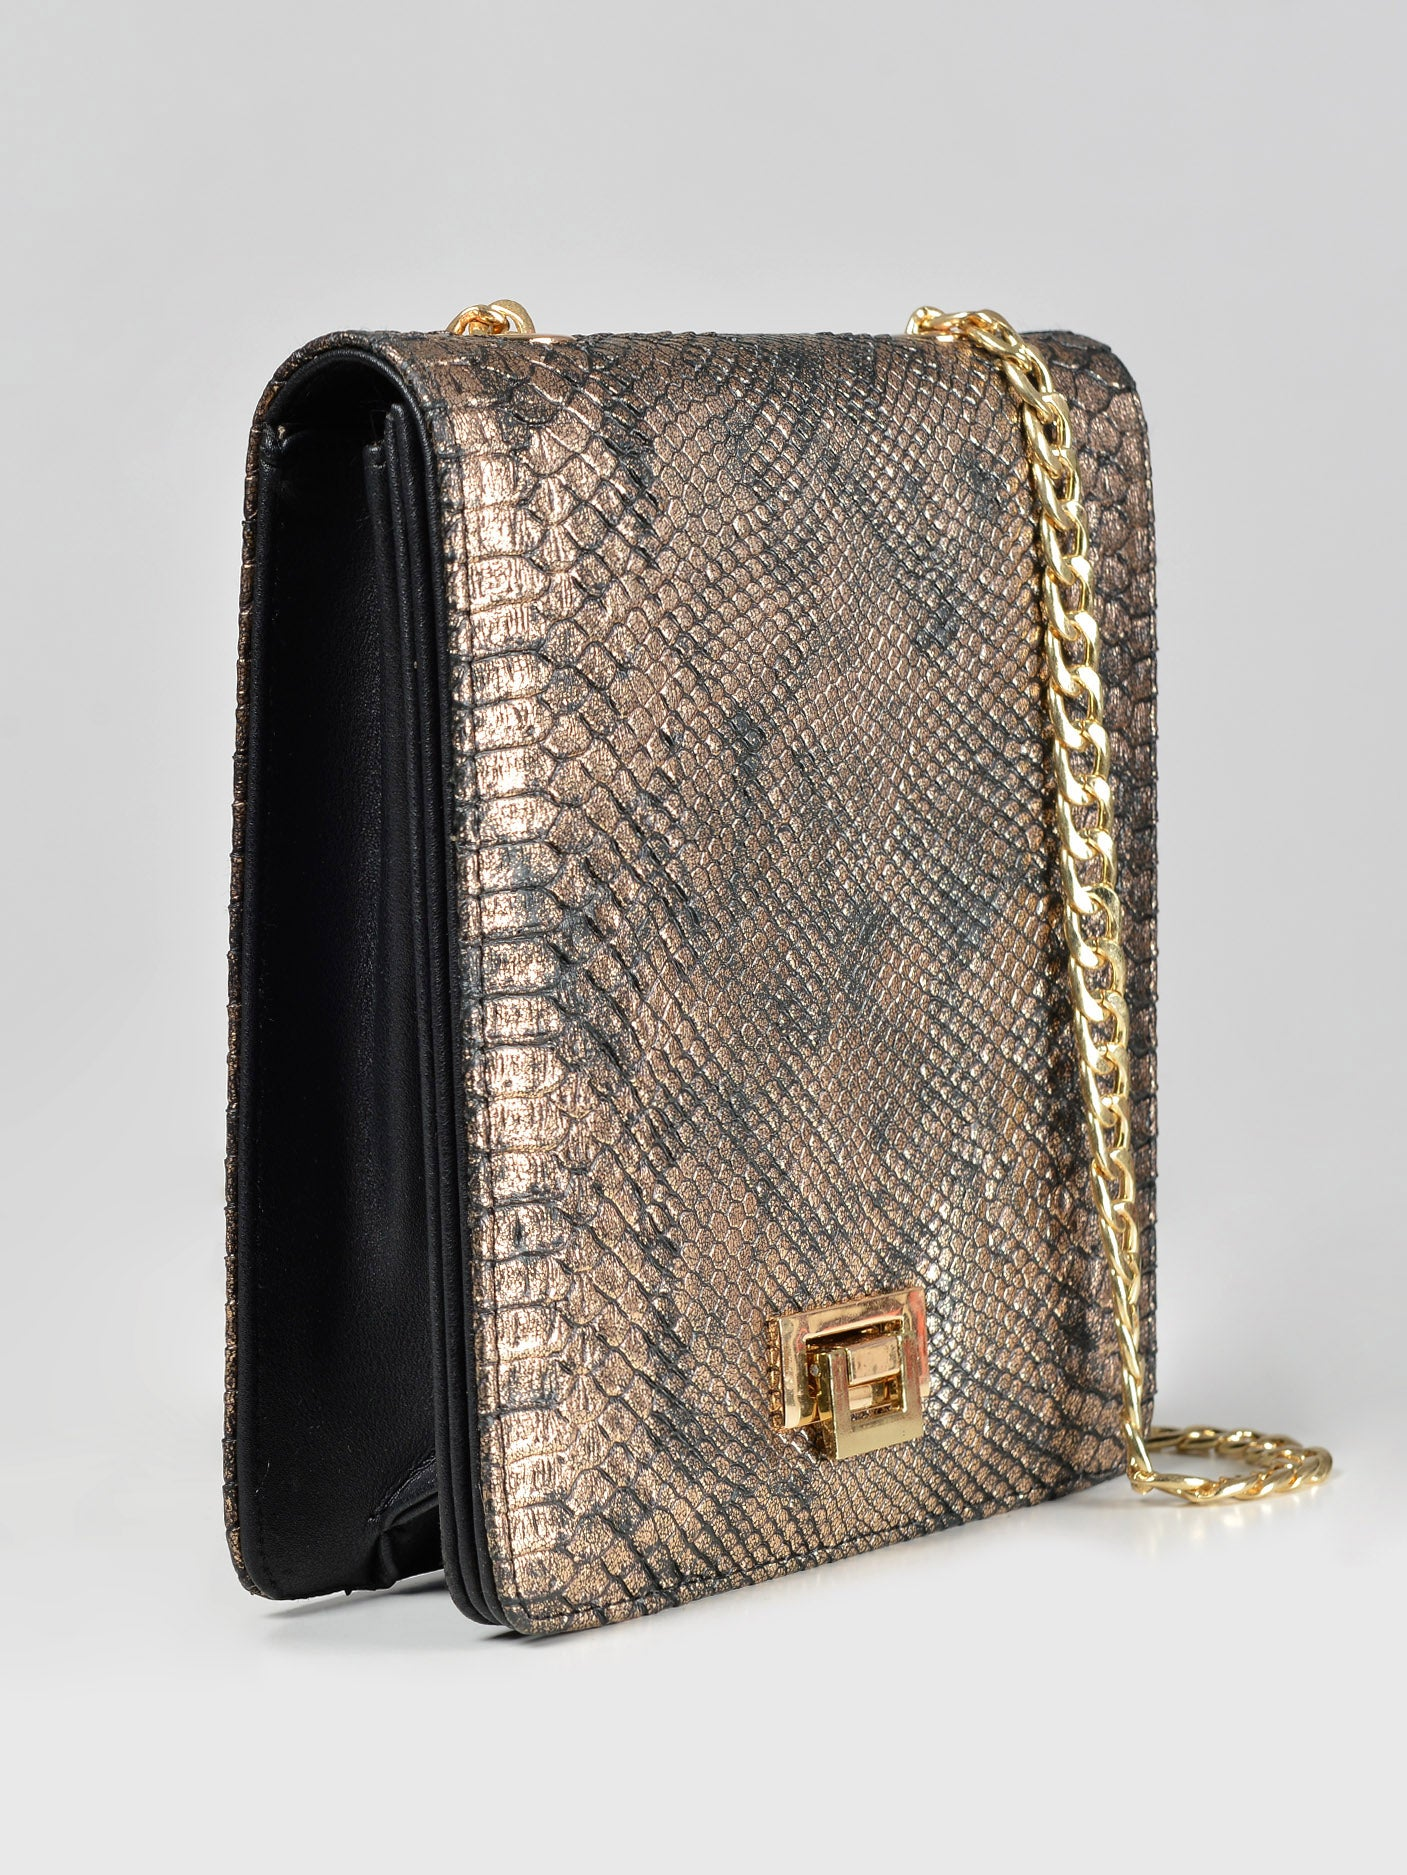 Cheetah Textured Handbag